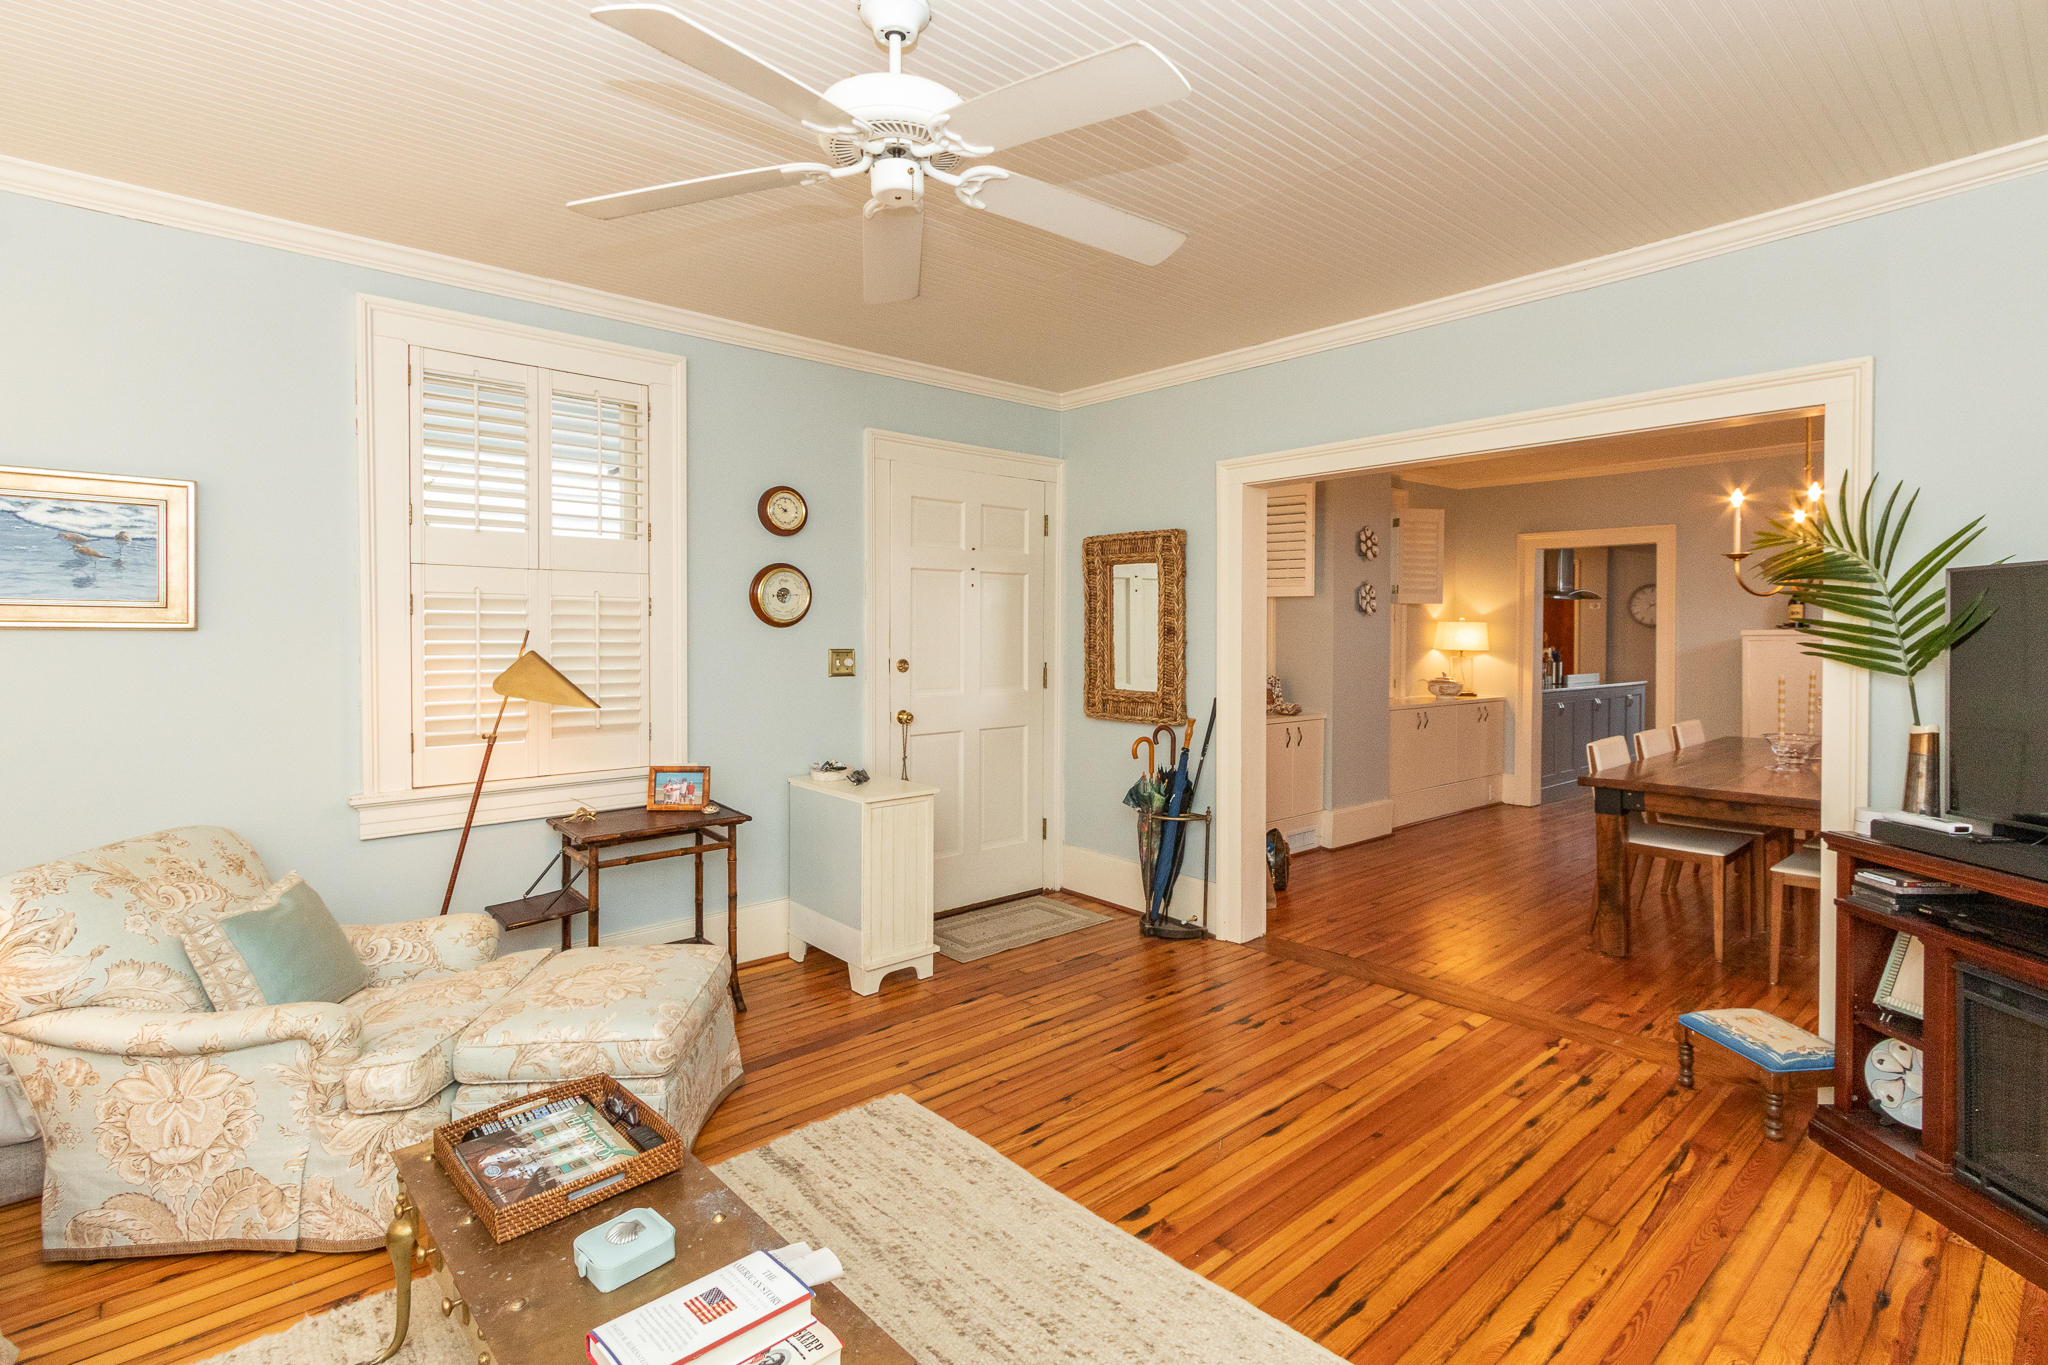 South of Broad Homes For Sale - 164 Tradd, Charleston, SC - 34